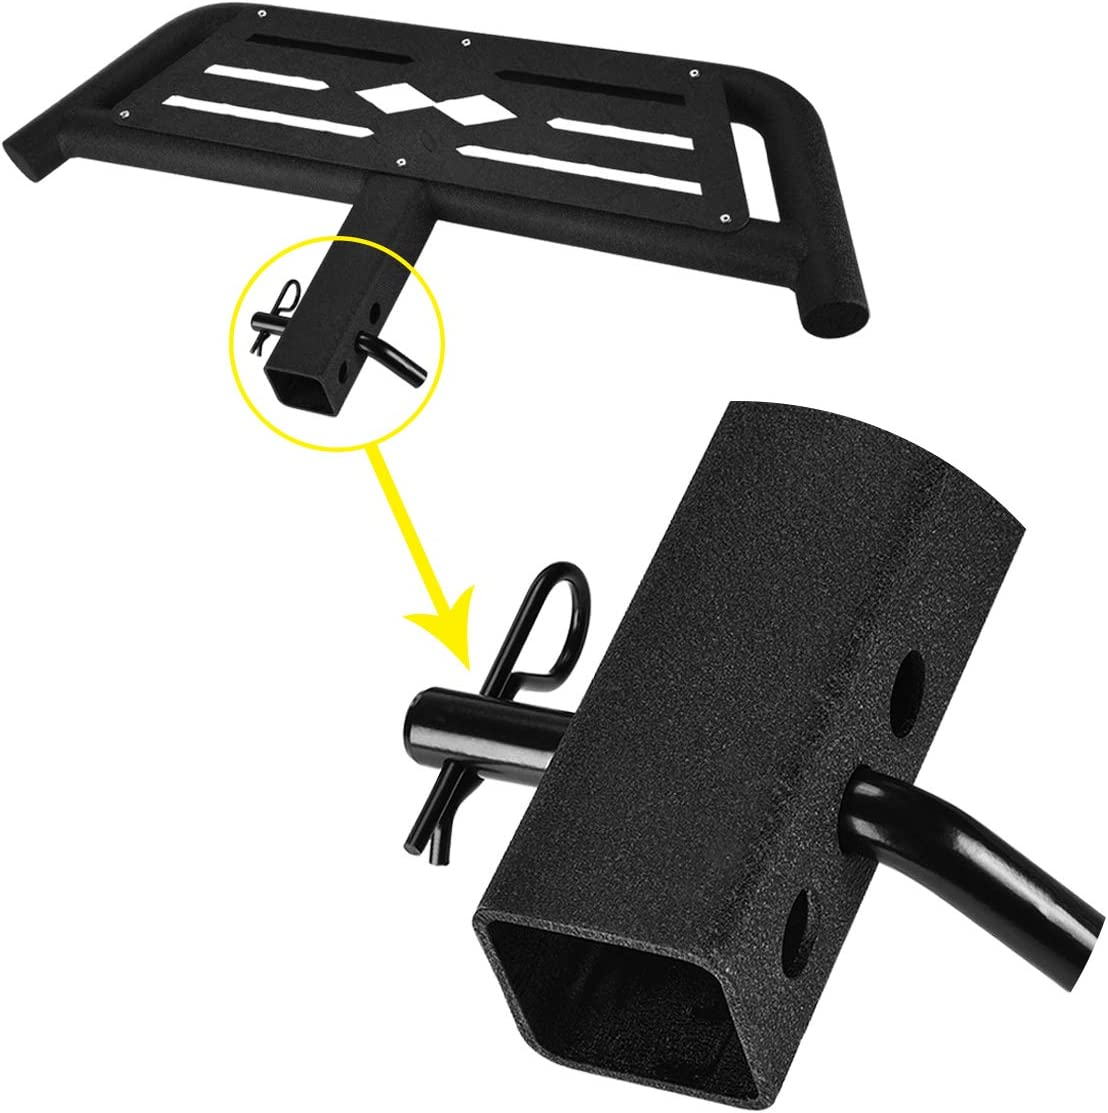 with Pin Lock and Stabilizer Rear Bumper Guard Protector HONGNAL Hitch Armor for Cars with 2-in Hitch Receiver Hitch Step Textured Black